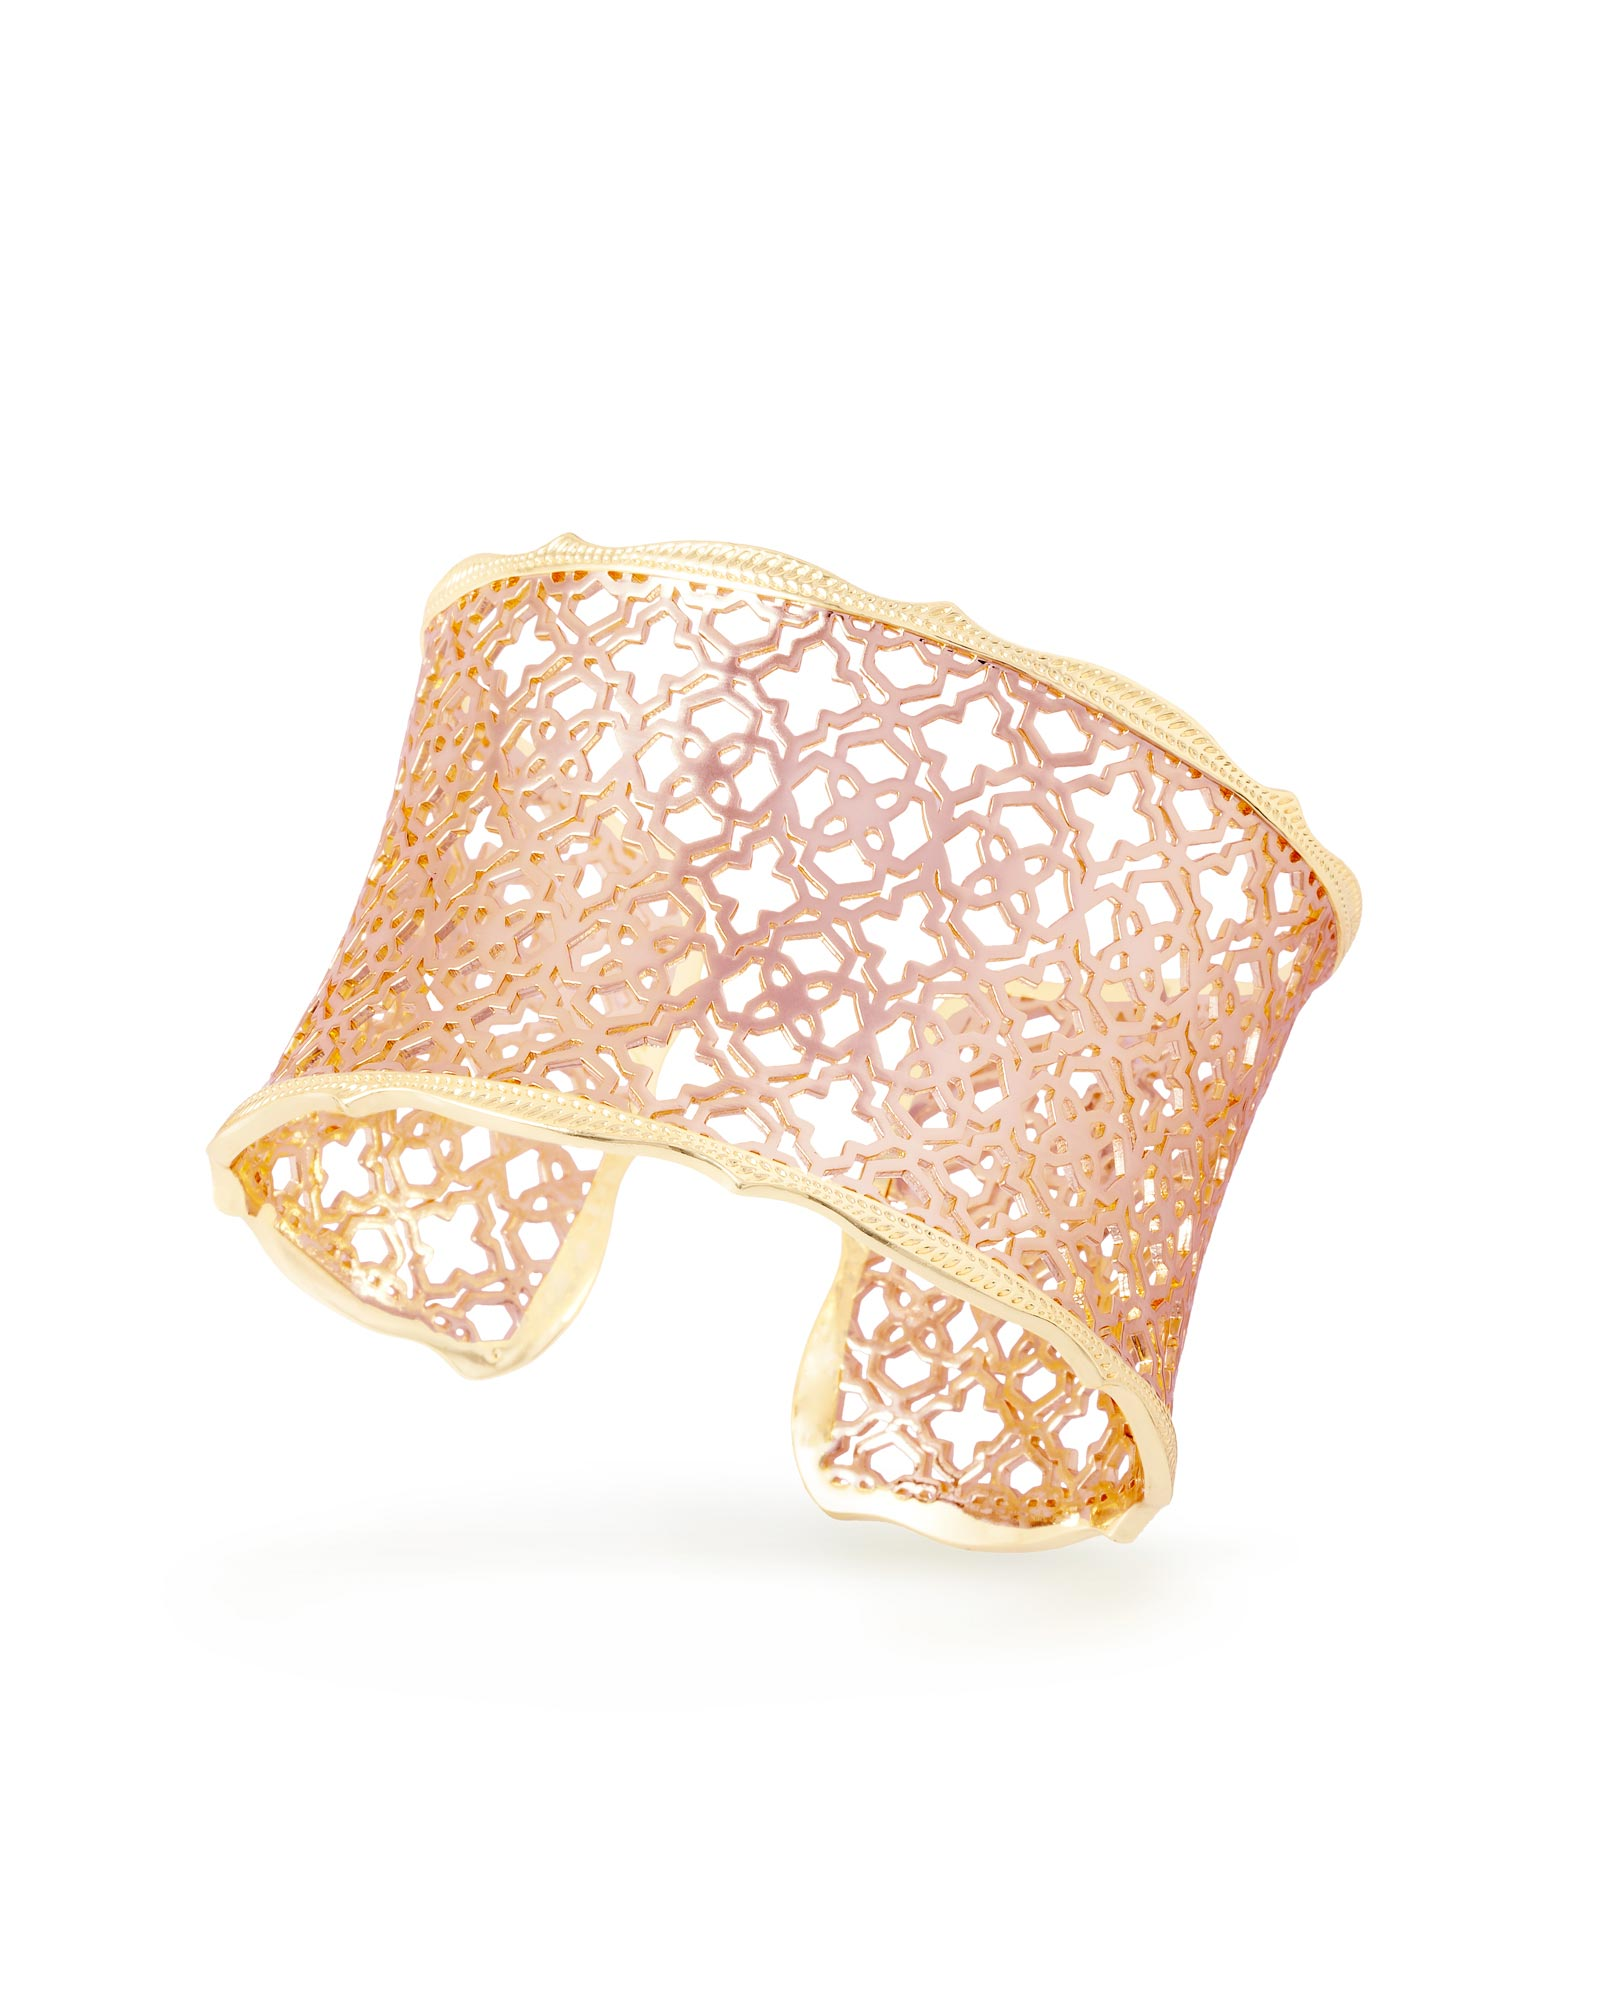 Candice Gold Cuff Bracelet in Rose Gold Filigree Mix